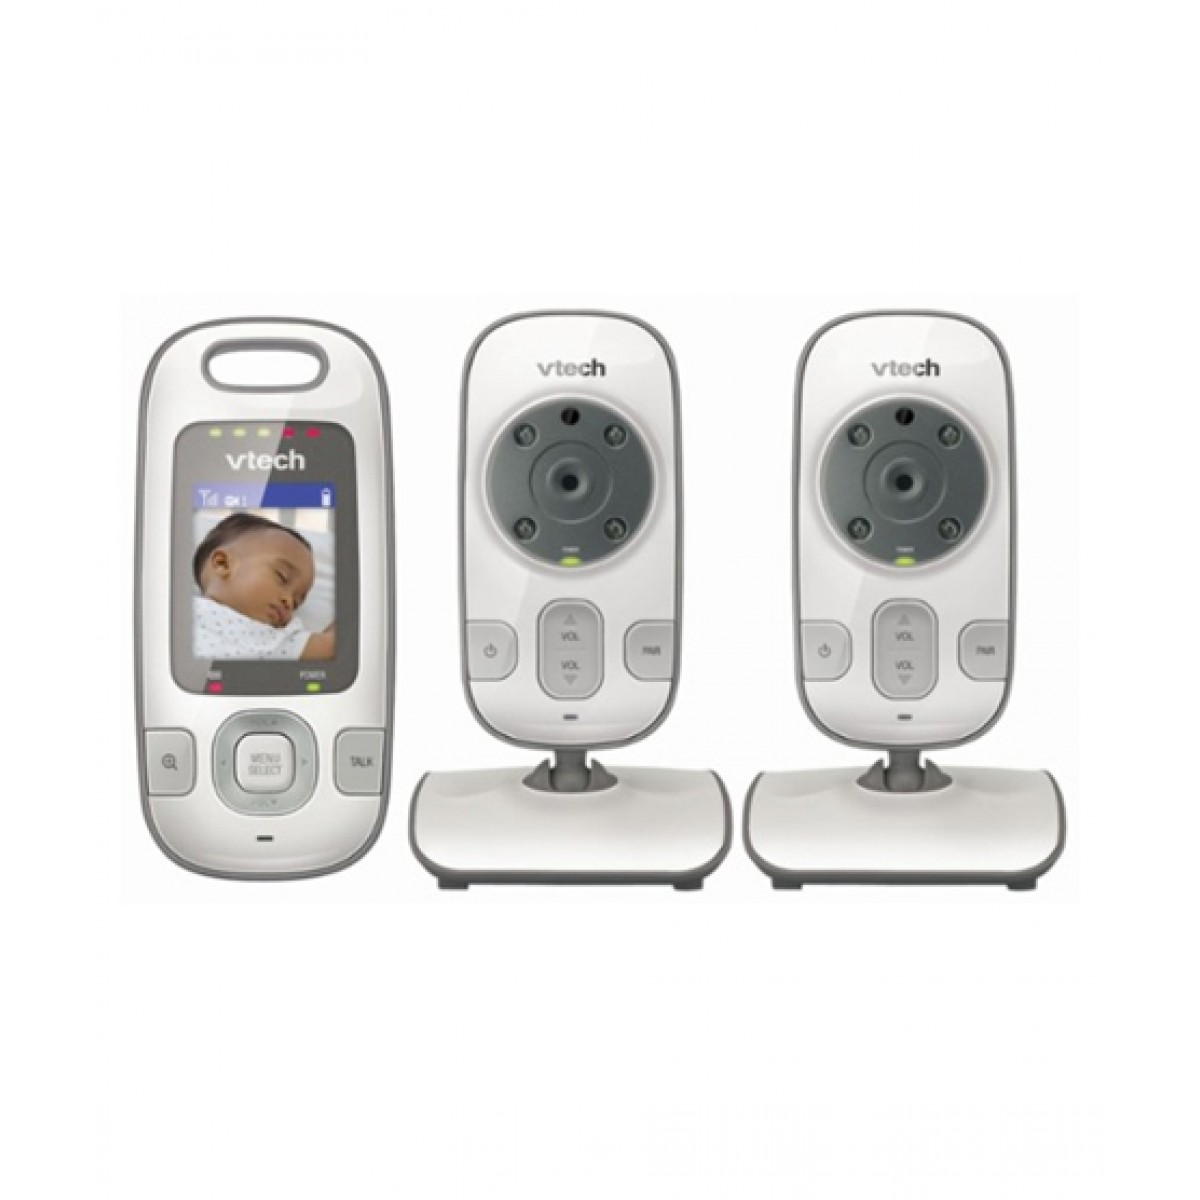 VTech Baby Video Monitor With 2-Cameras White/Silver (VM312-2)